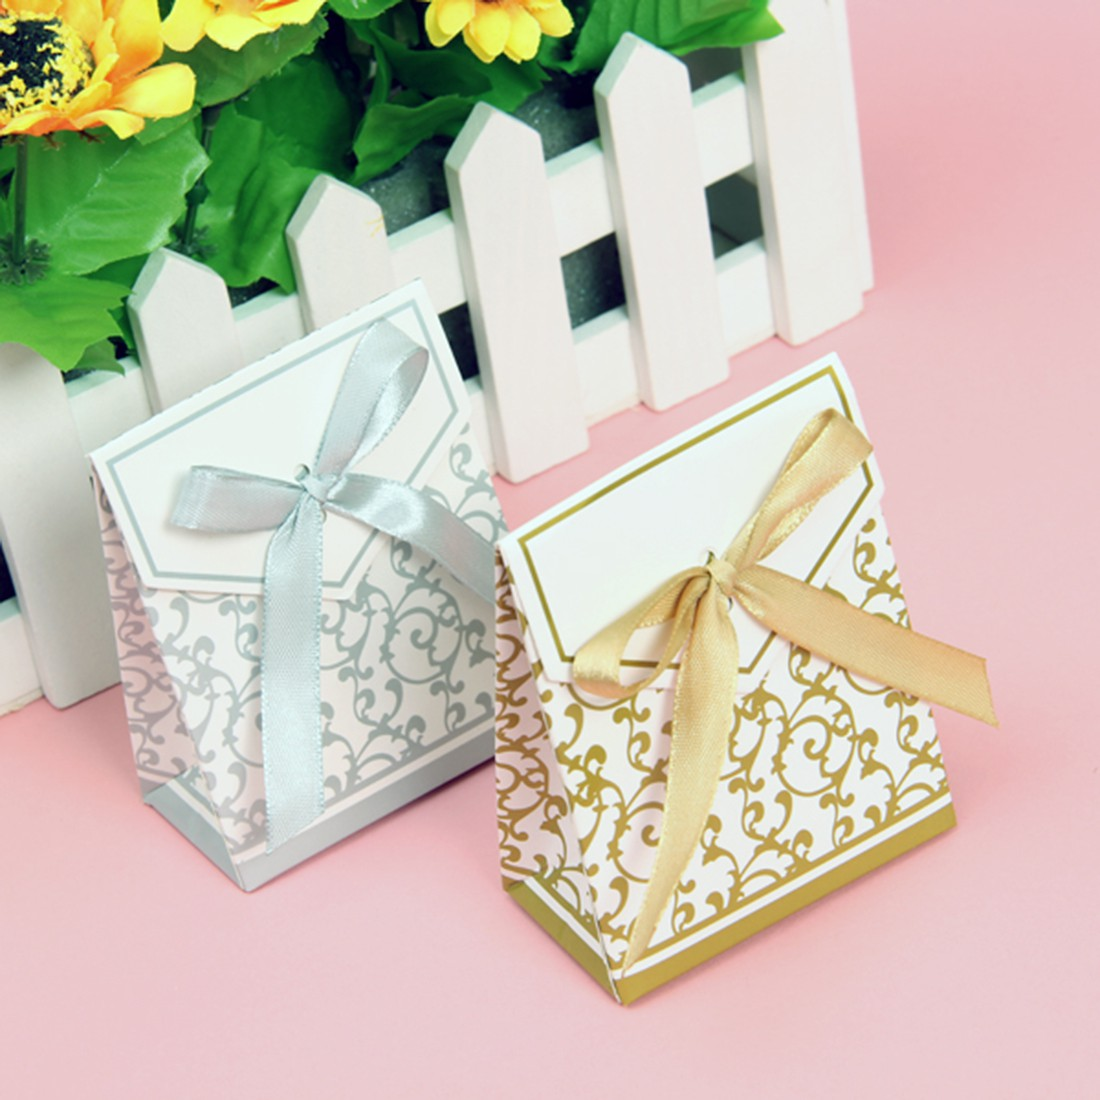 Wedding Favor Bags And Ribbons : ... /Gold Bridal Wedding Party Favor Gift Ribbons Candy Boxes Bags eBay